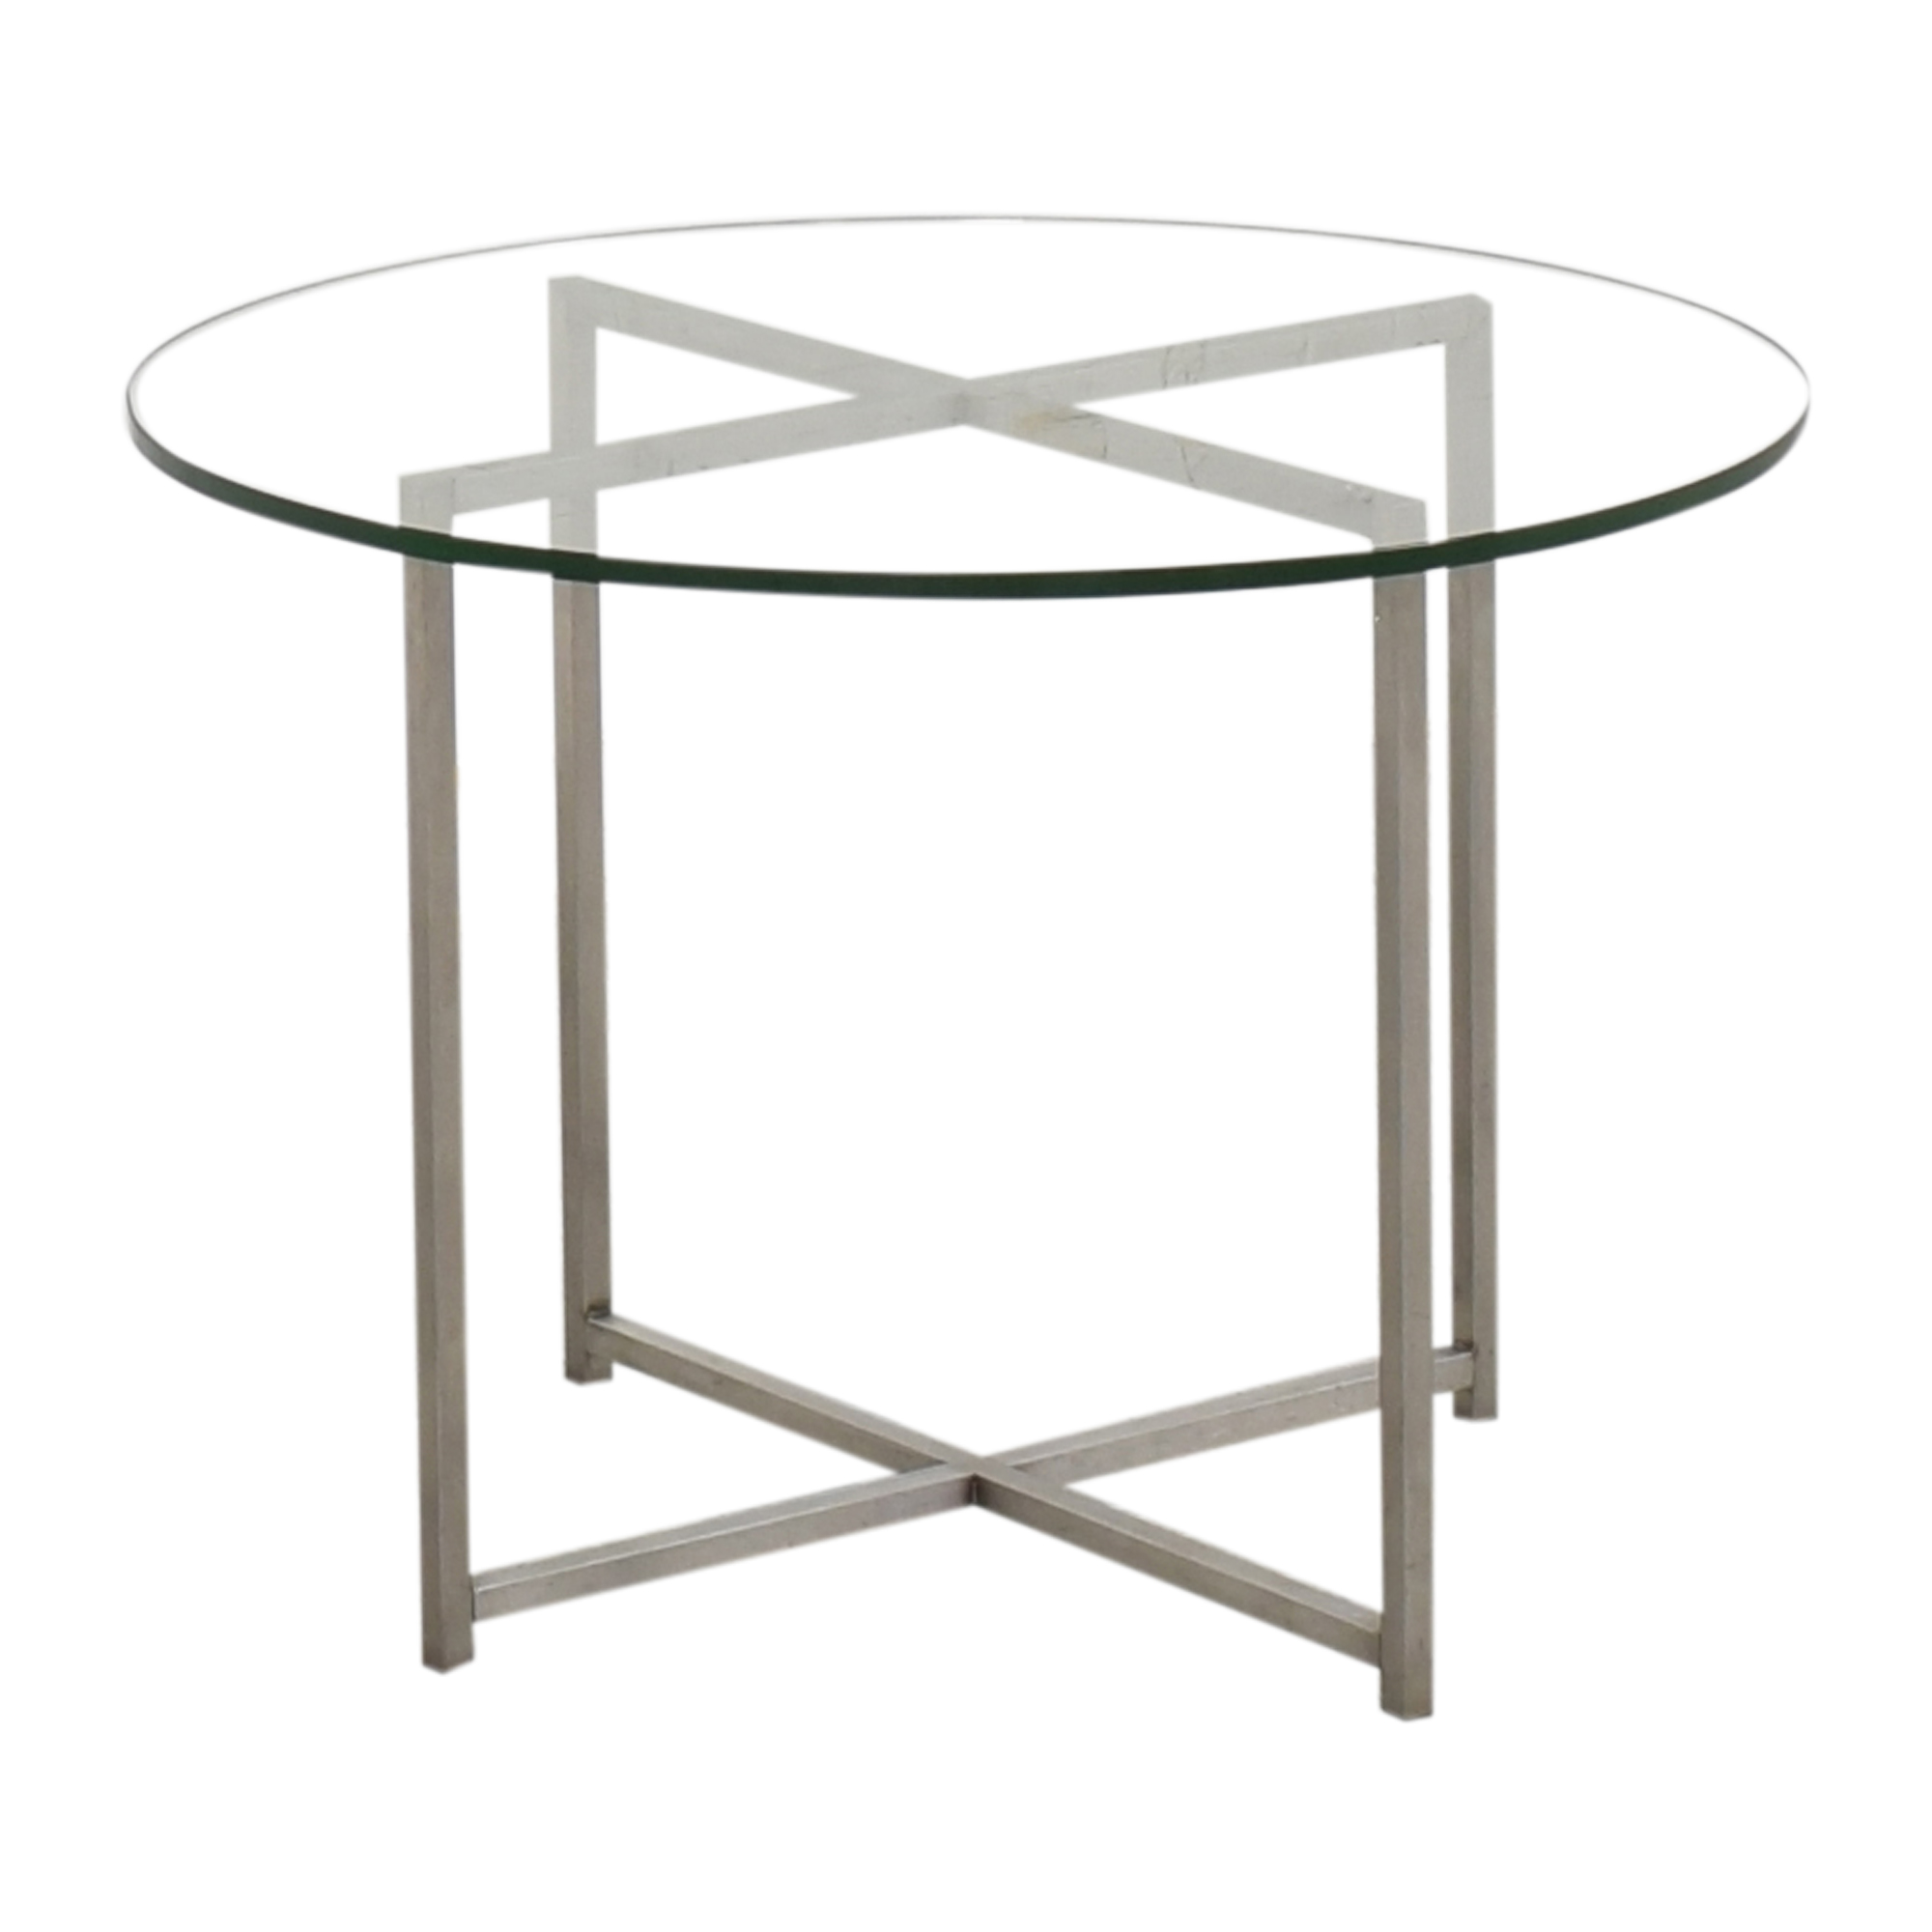 Room & Board Room & Board Classic Round End Table for sale